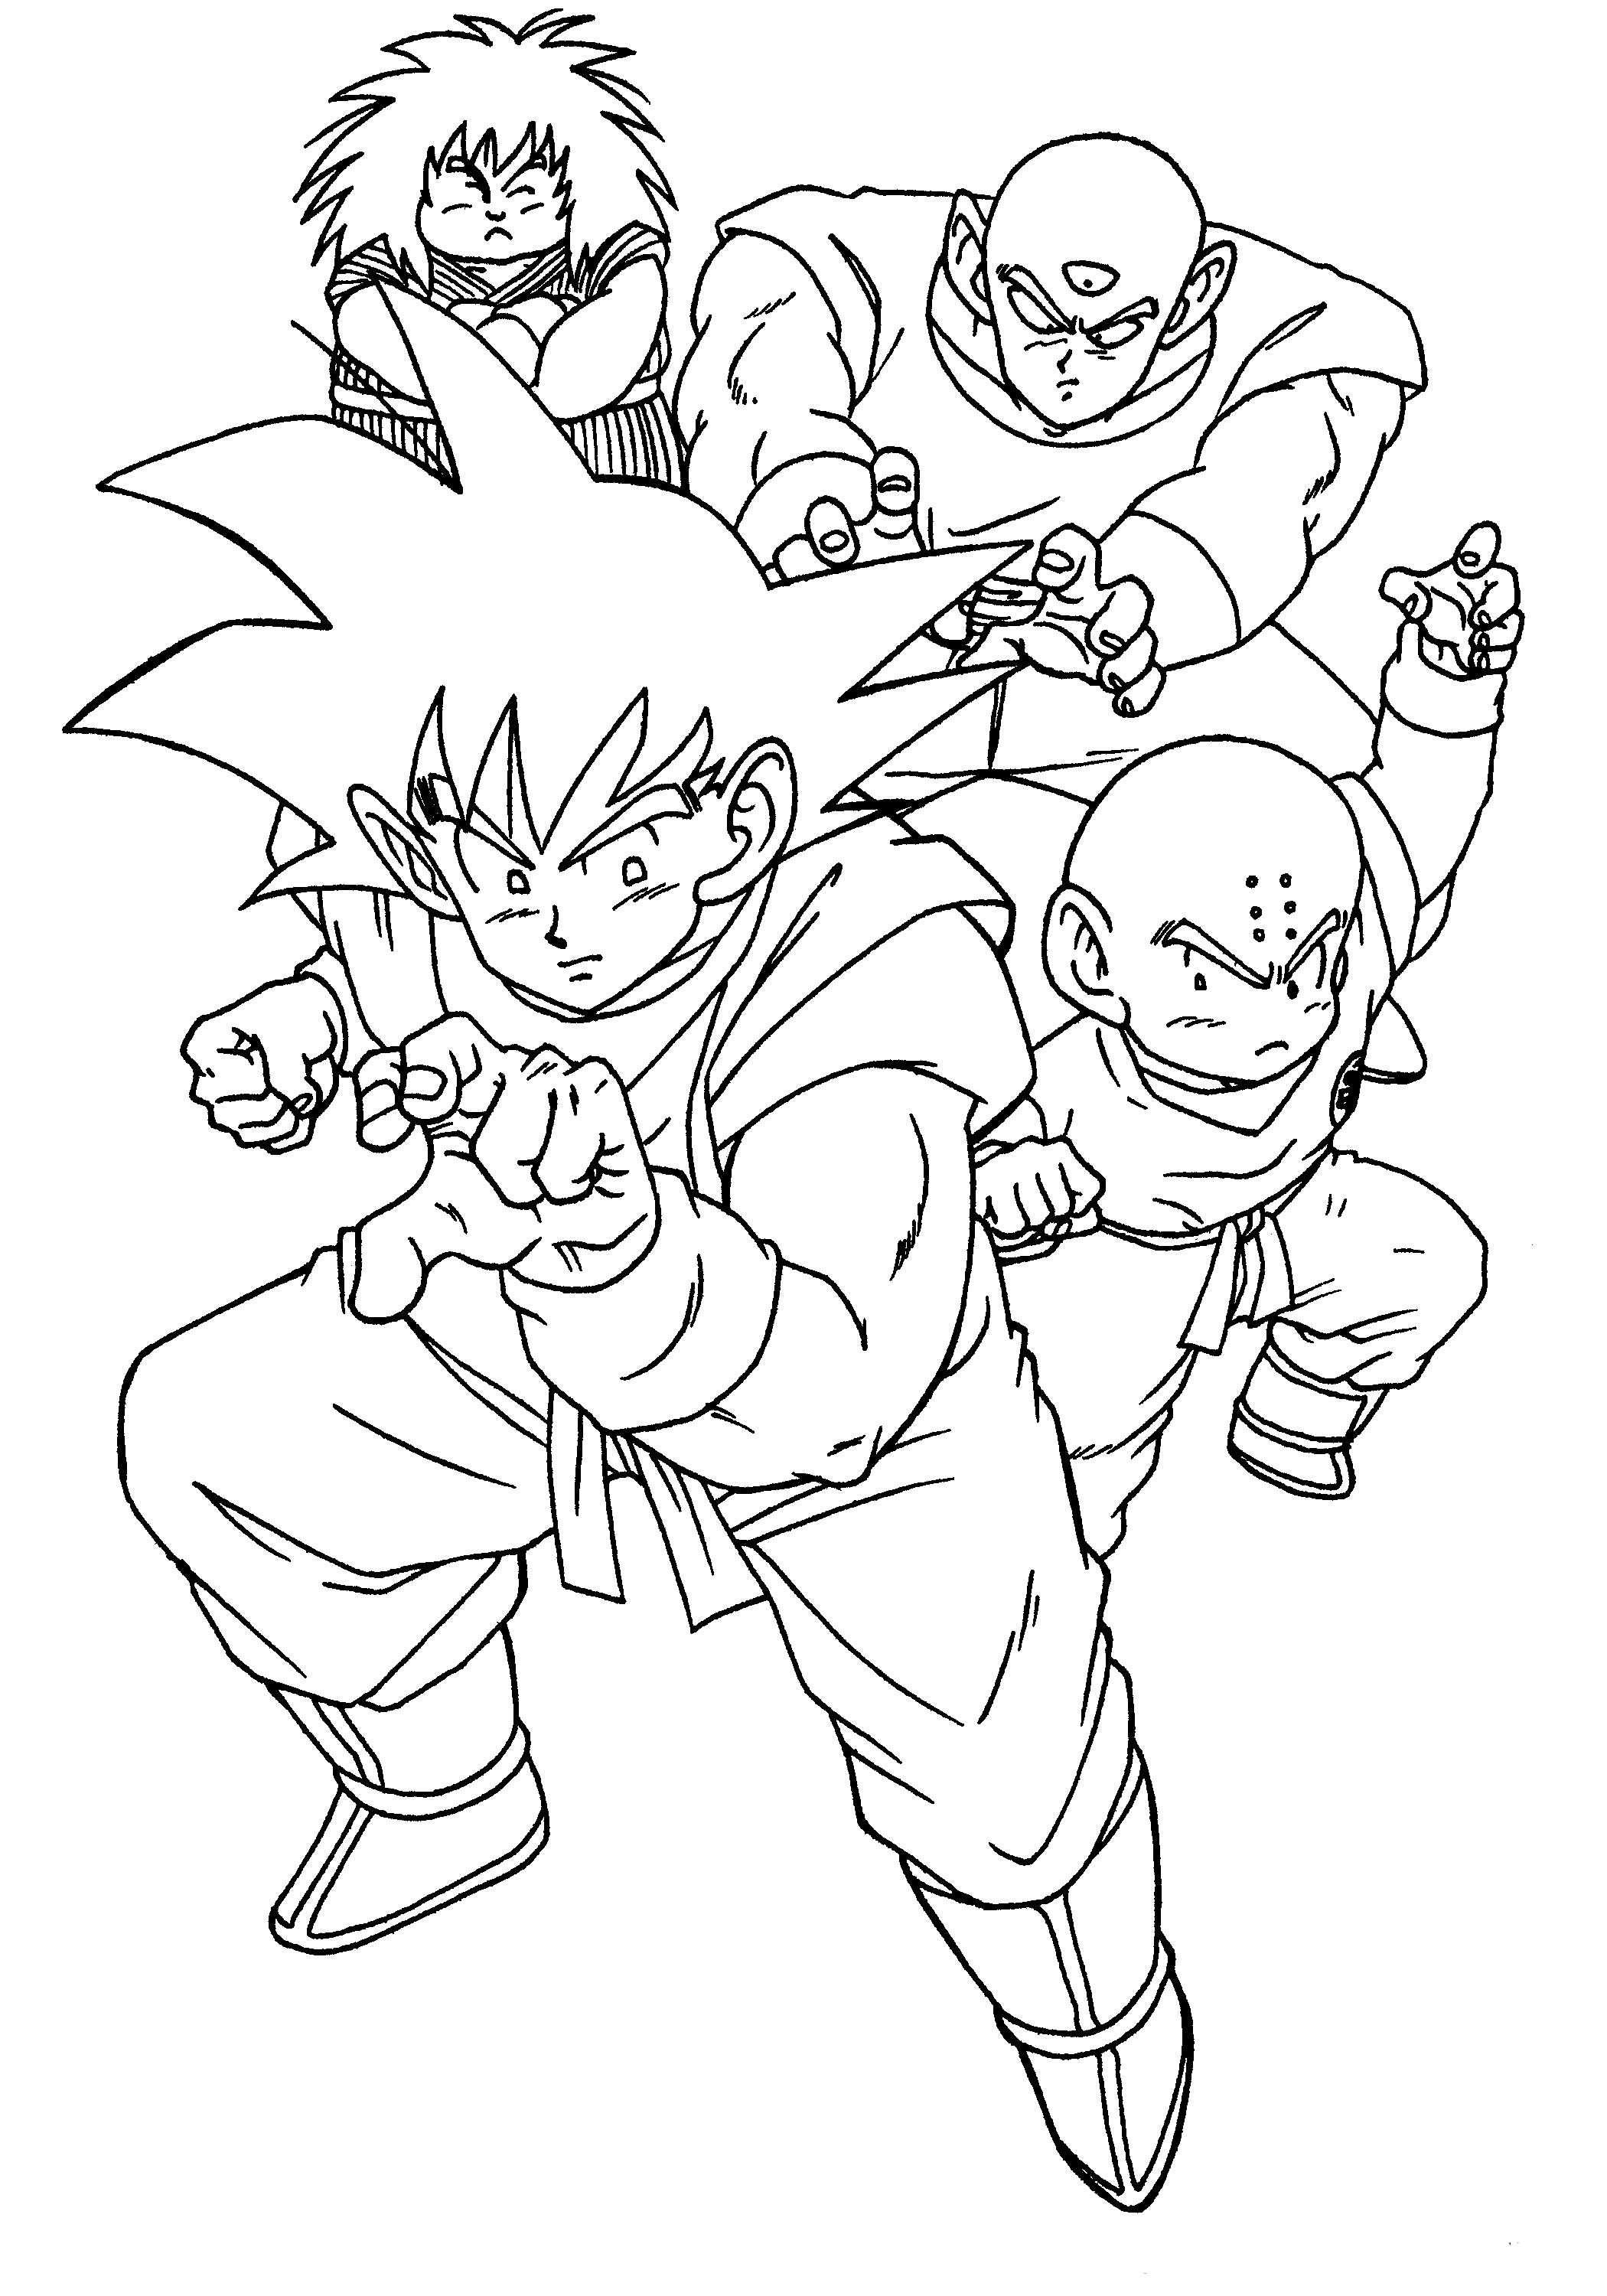 Dragon Ball Z Son Goku And Friends | Dragon Ball Z Coloring Pages ...